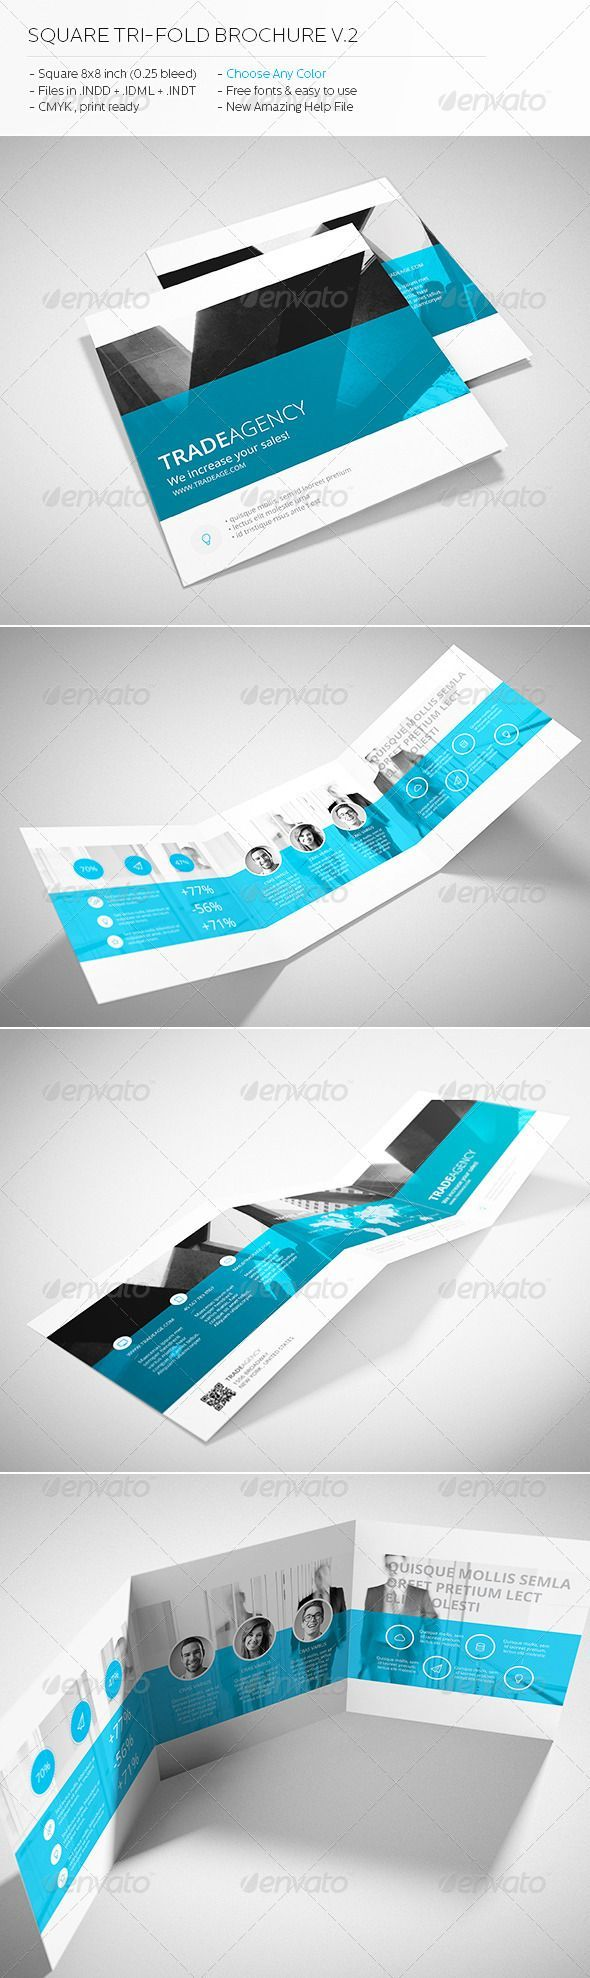 Get Your Attractive And Professional Realestate Brochure Design - Fold out brochure template